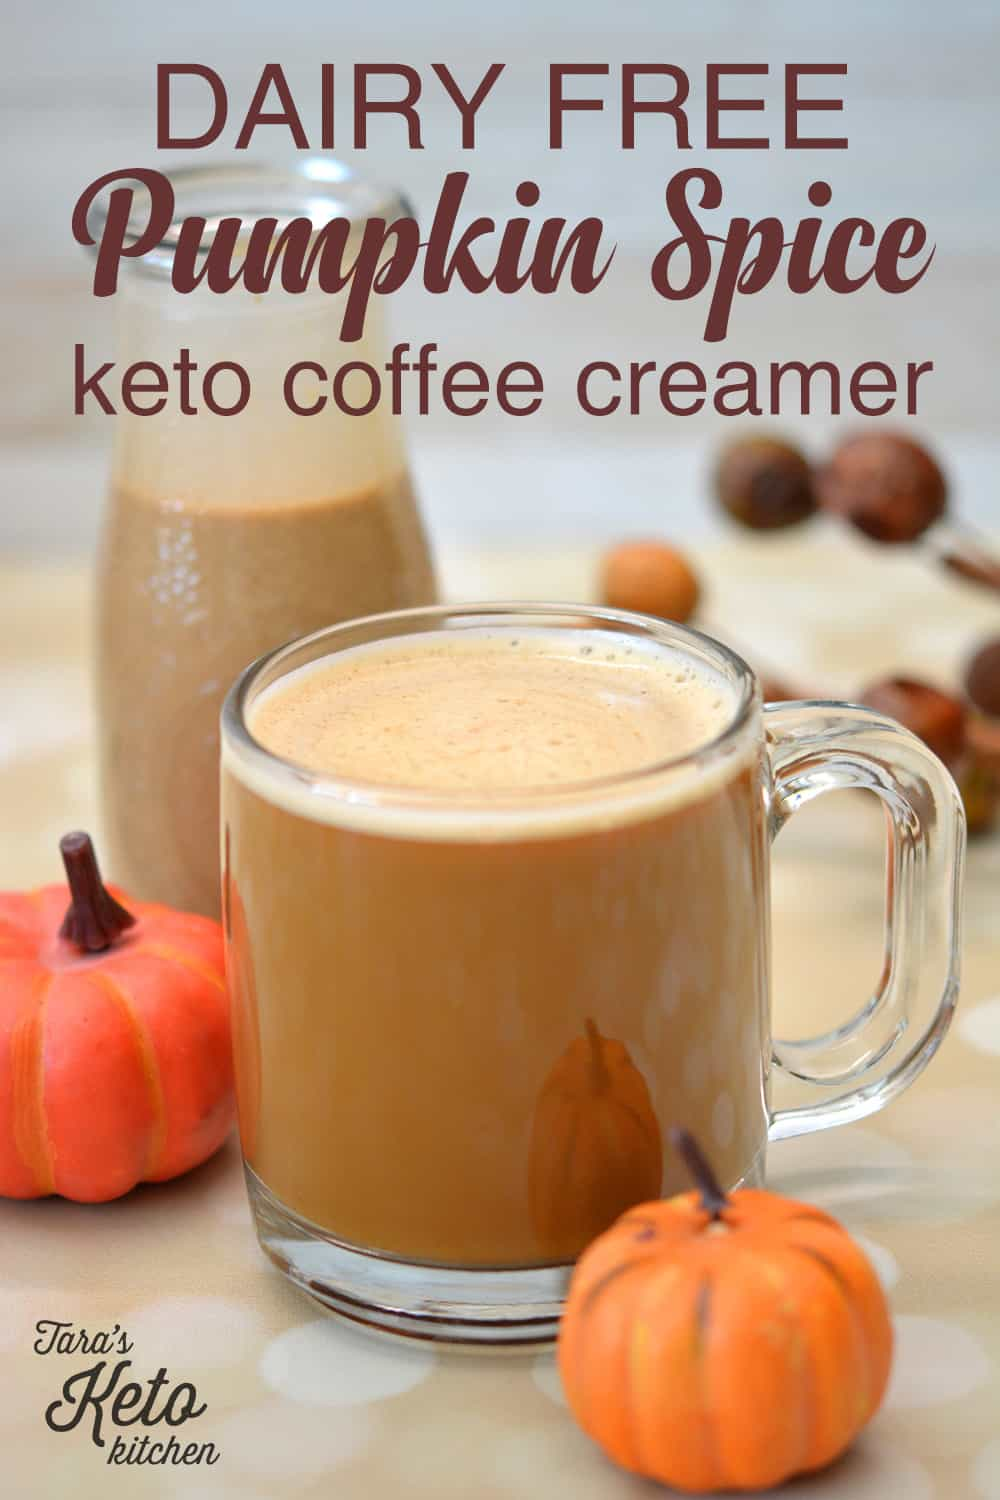 Dairy Free Pumpkin Spice Keto Coffee Creamer with title